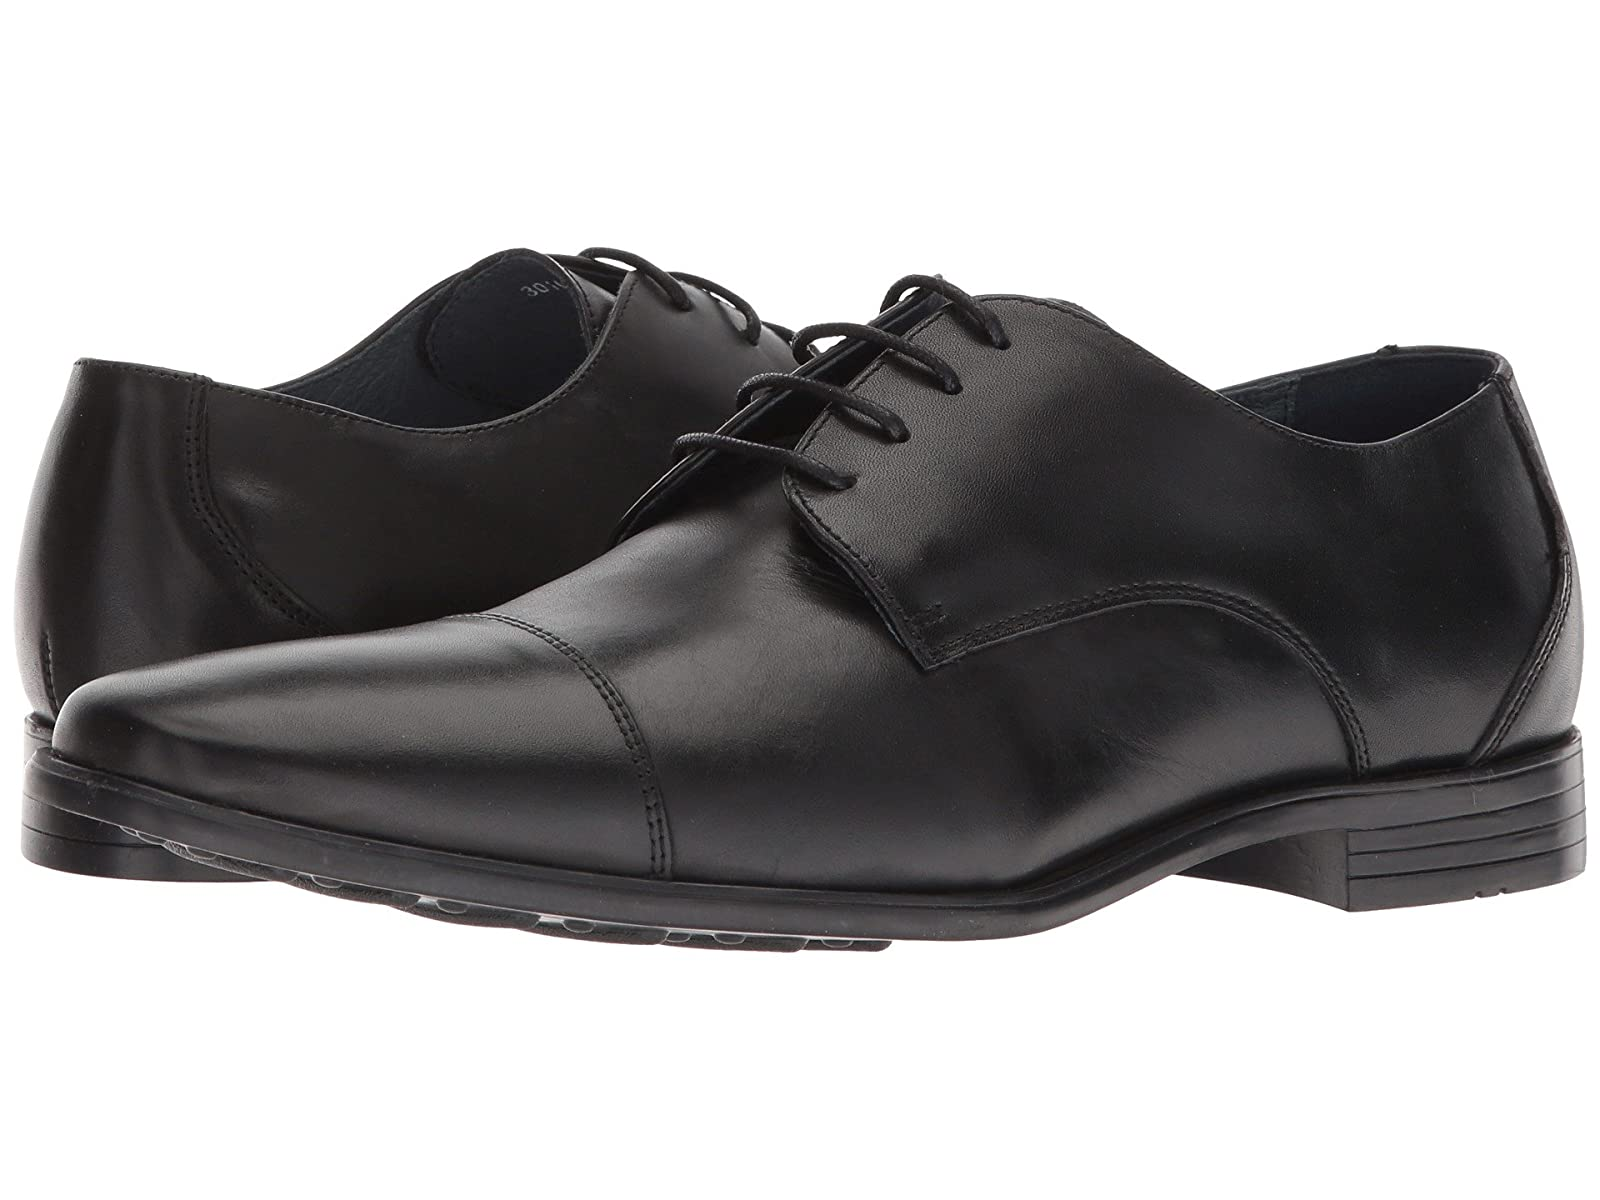 RUSH by Gordon Rush JohnstonAtmospheric grades have affordable shoes